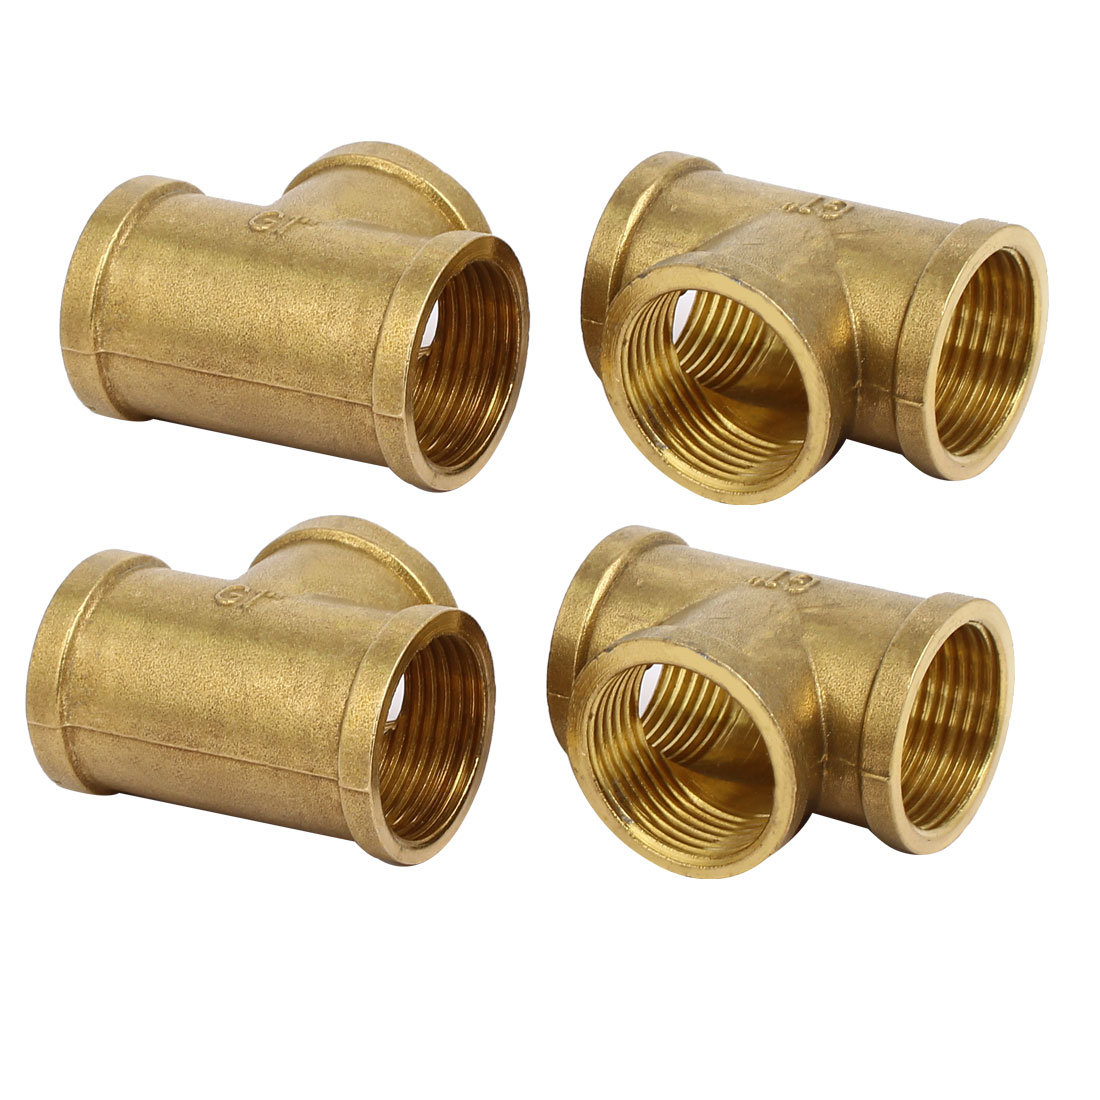 1BSP Female Thread Brass T Shape Tube Pipe Connecting Fittings Connectors 4pcs